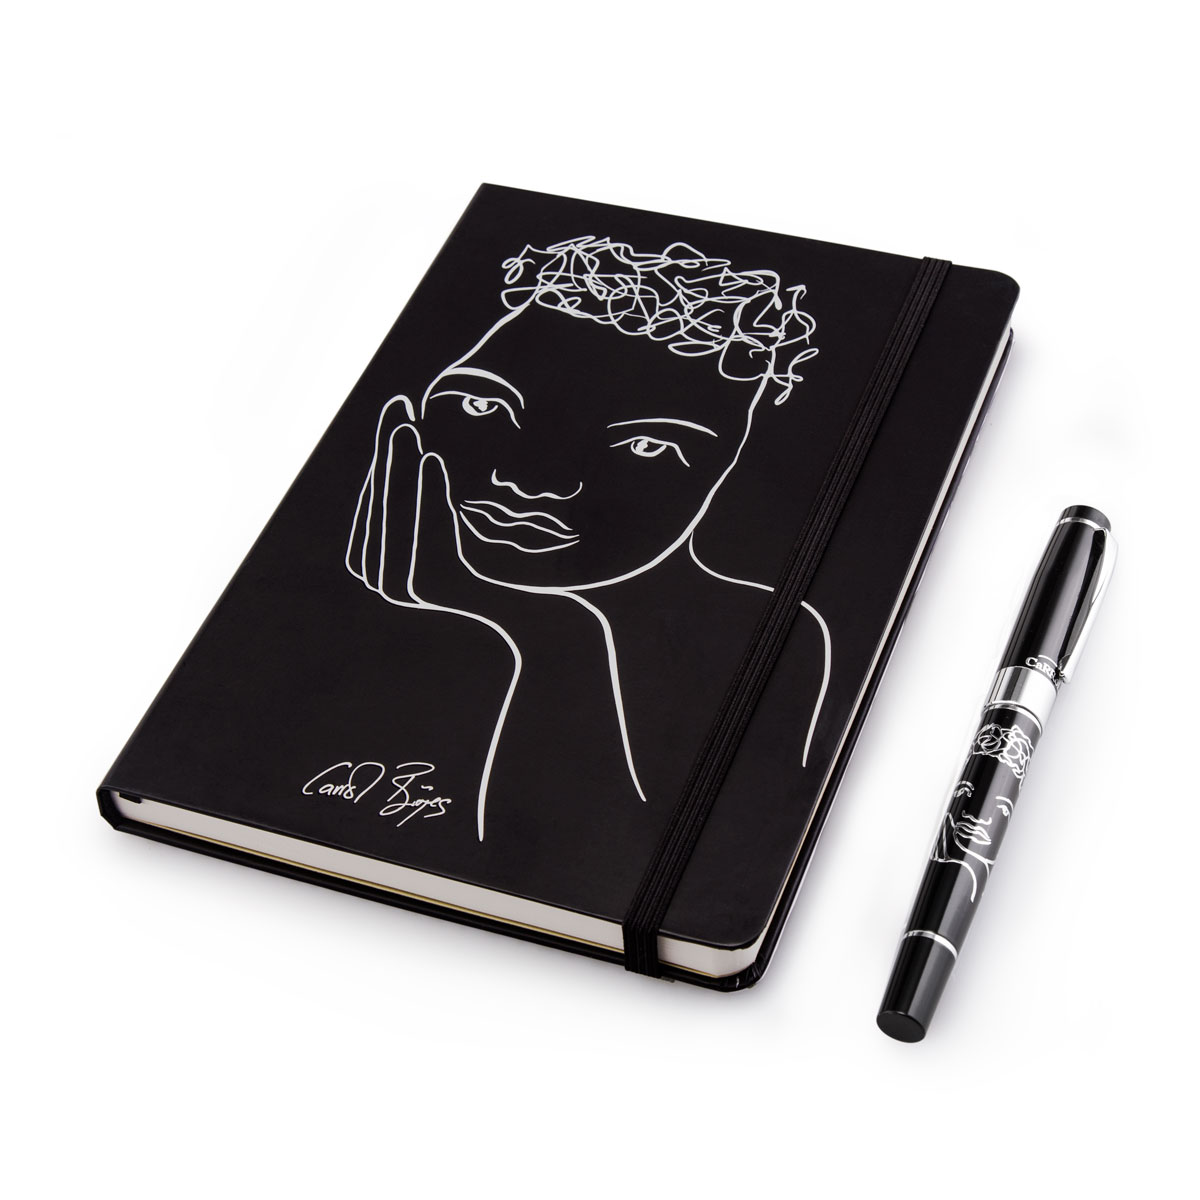 NOTE BOOK SET - knowing €70.00